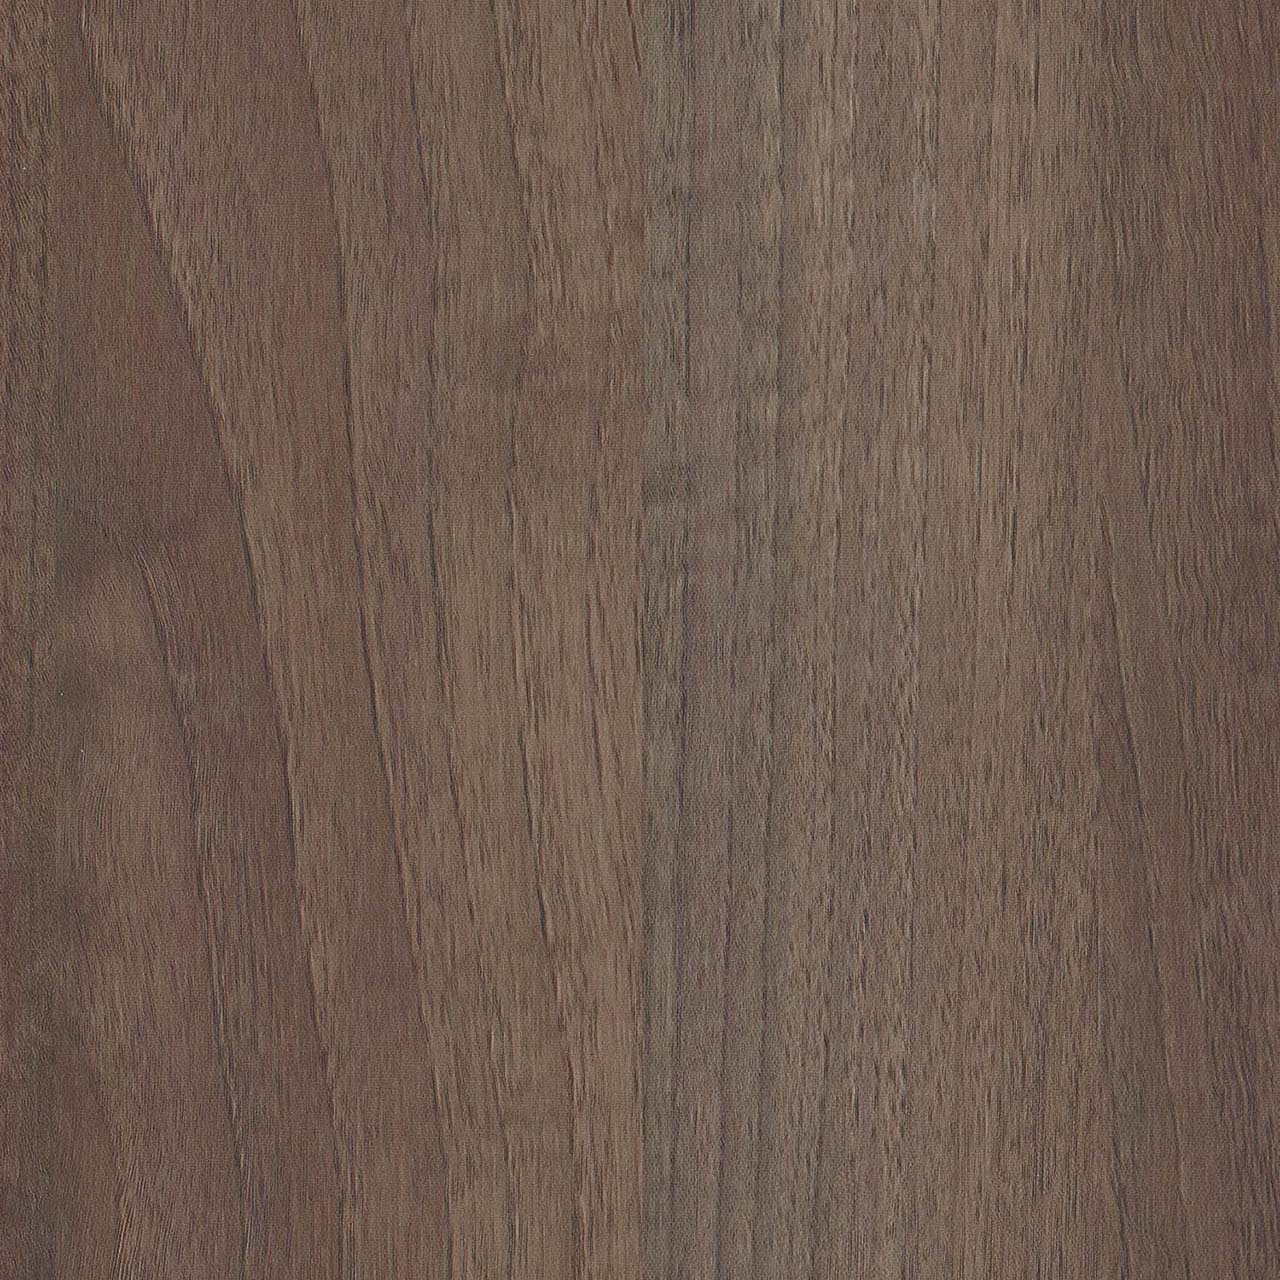 Opera Walnut effect laminate panel